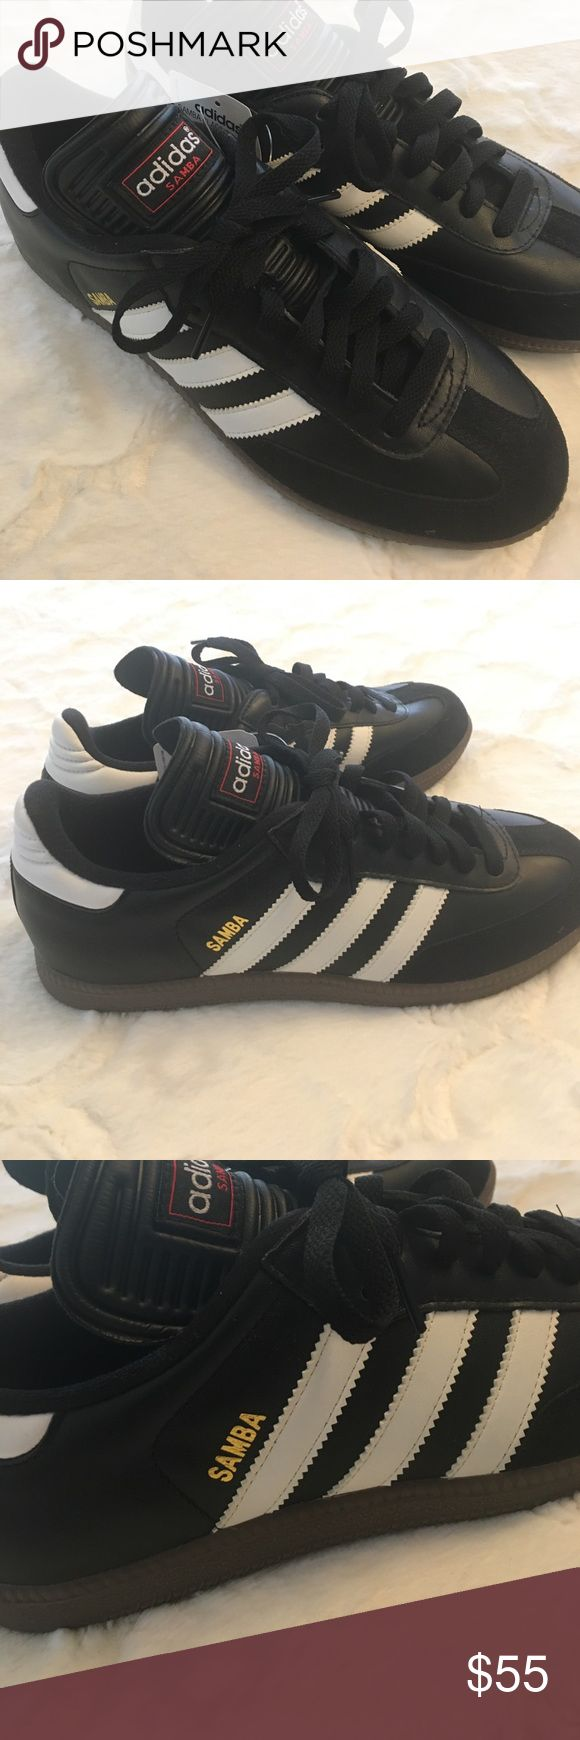 NWT original Adidas Samba Classic Sneakers men's 7 These are the original Samba Classics from Adidas.  Brand new with tags. Men's US size 7. Adidas Shoes Sneakers